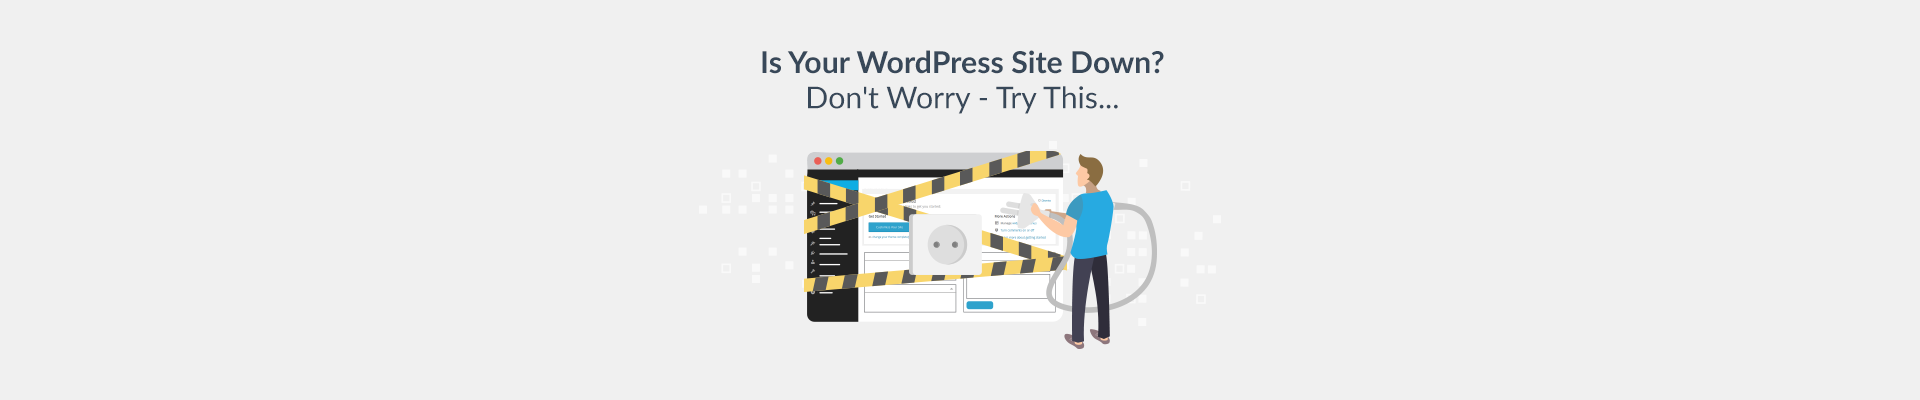 WordPress Site Down? Try these Top Tips to get it back up - Plesk